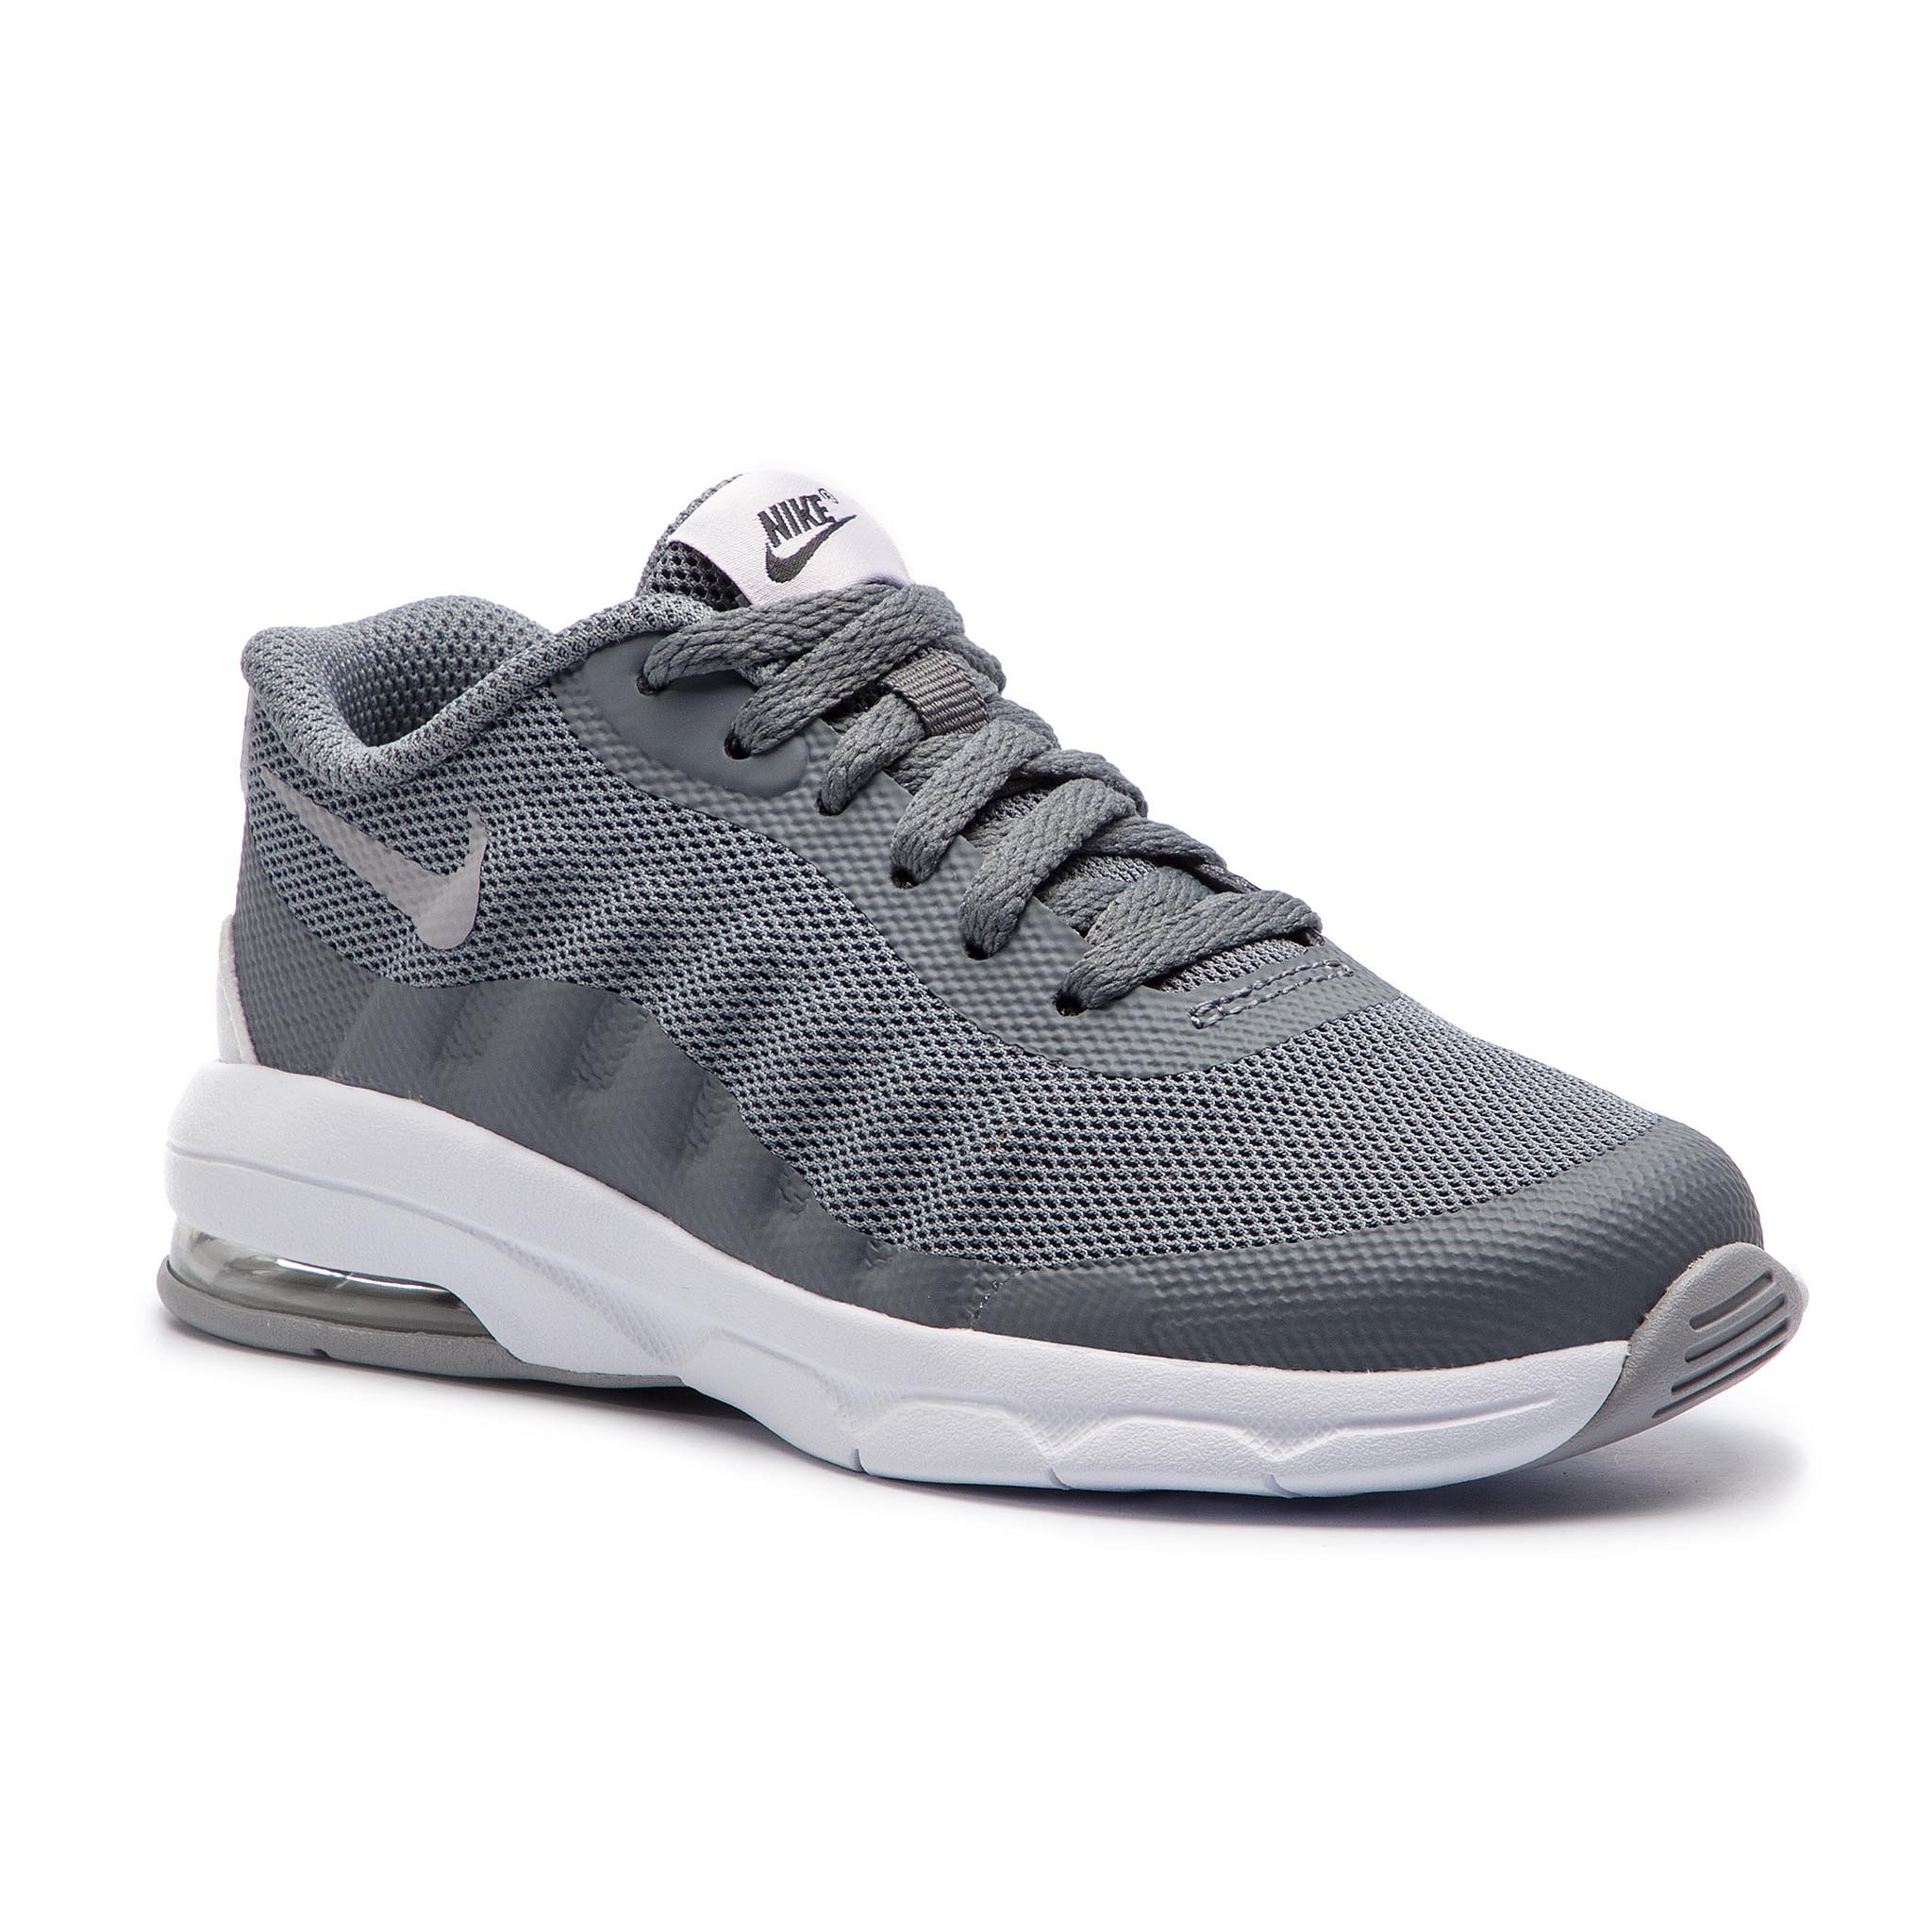 Buty NIKE – Air Max Invigor (PS) 749573 005 Cool Szare/Wolf Szare/Anthracite